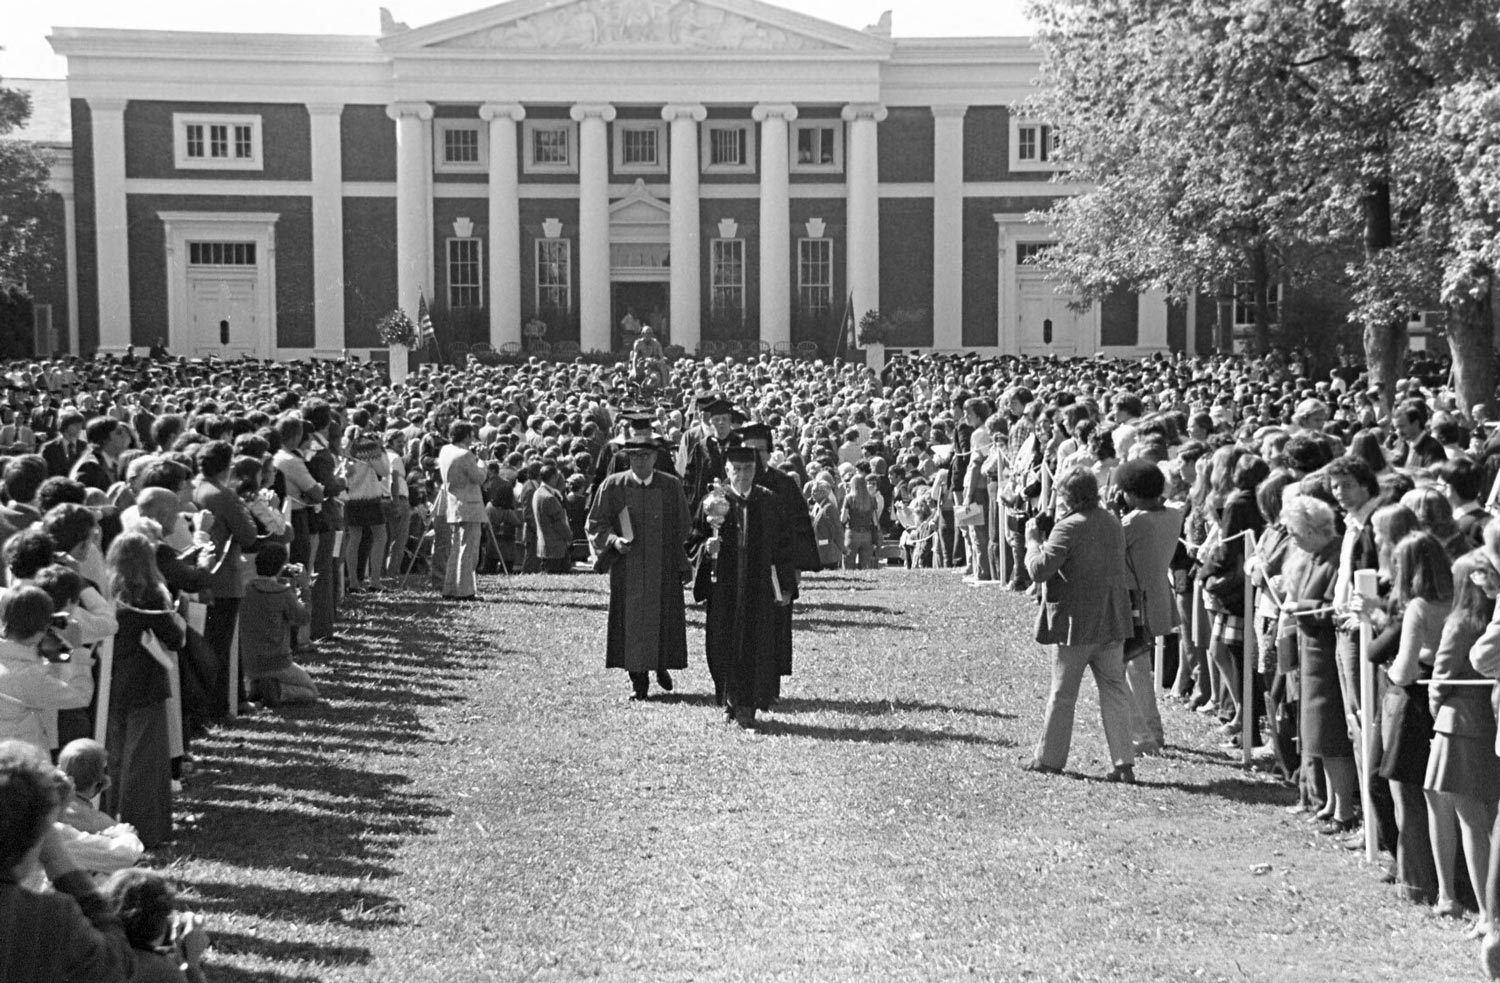 The inauguration procession for President Frank L. Hereford, heads back up the Lawn following his swearing-in.